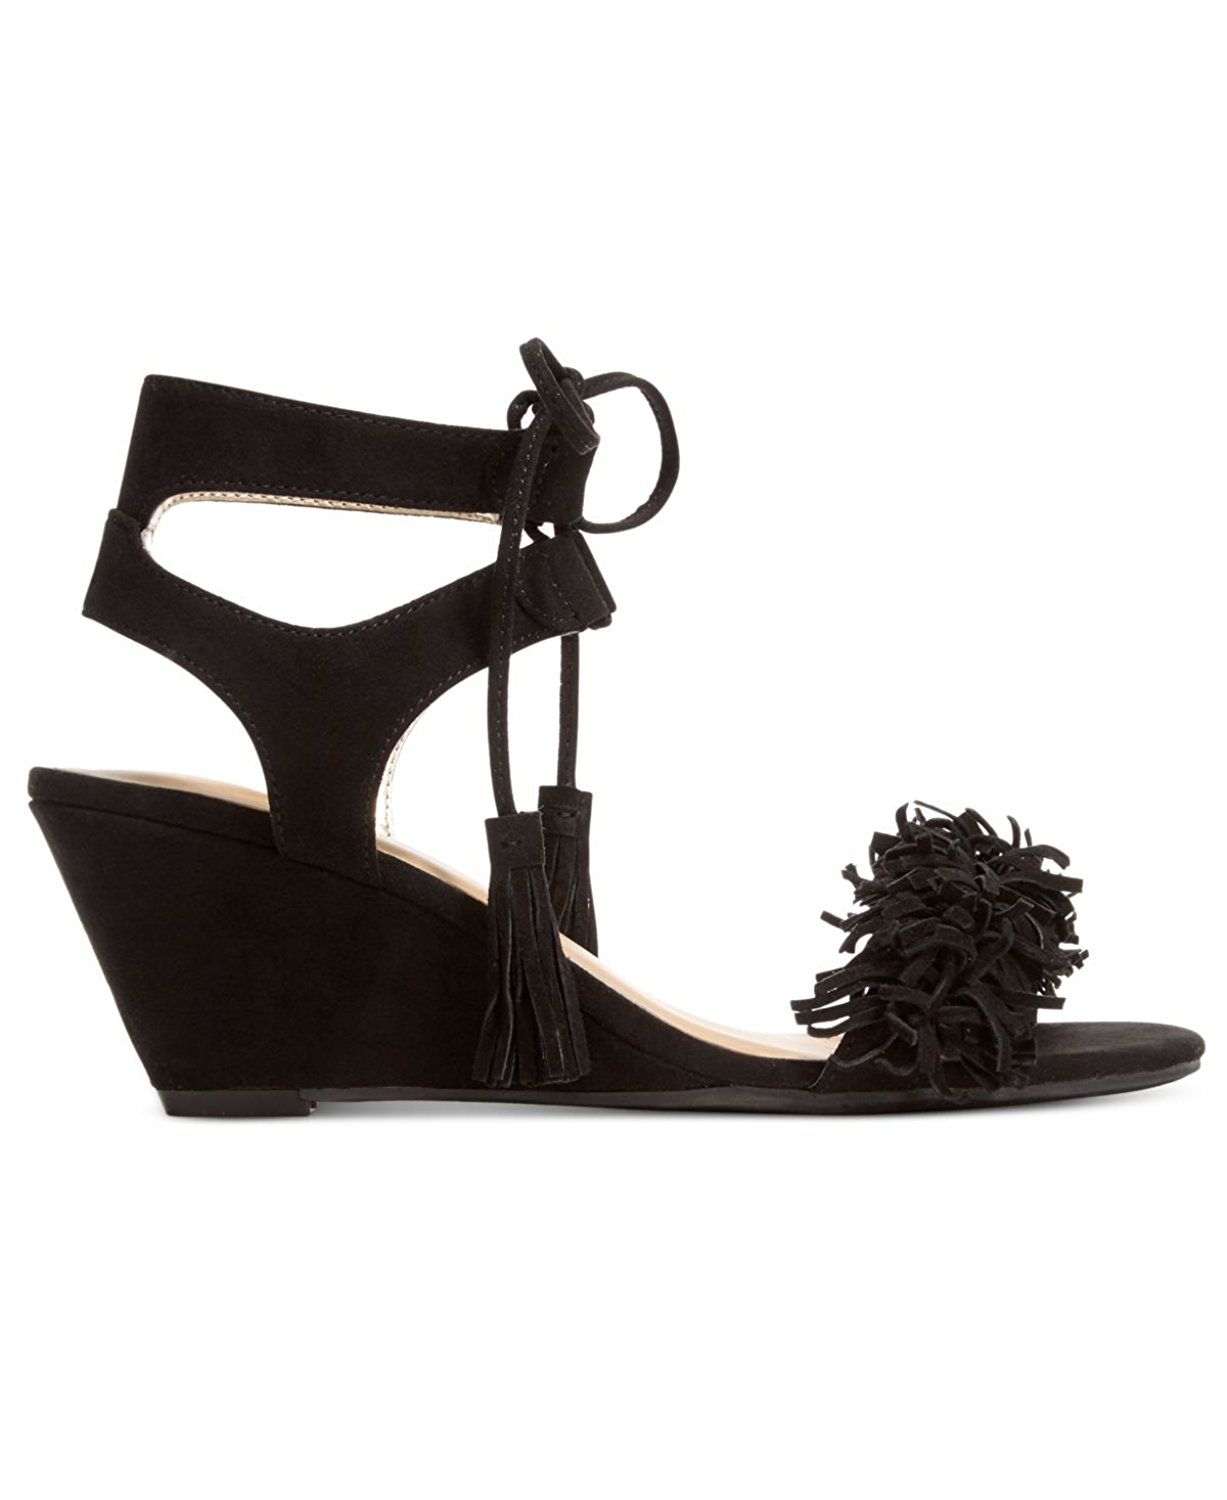 3cd16d2c015 Details about Material Girl Womens Haniya Leather Open Toe Casual Platform  Sandals